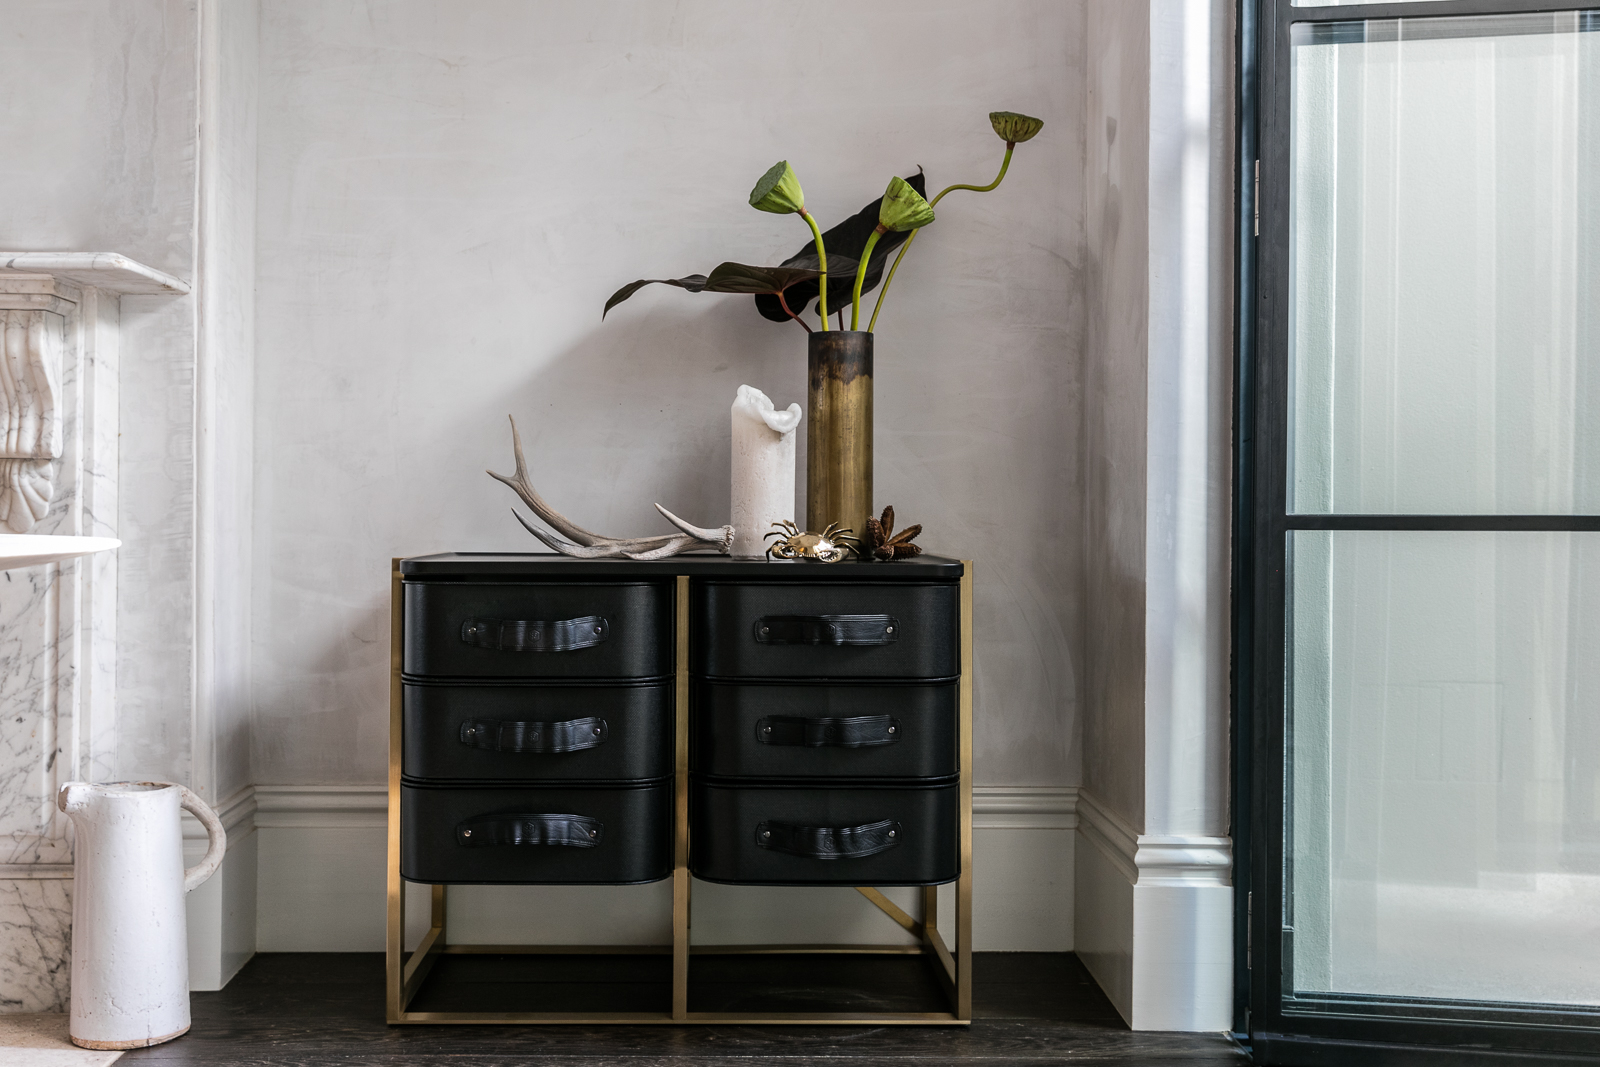 The  Luxe Collection  by  Sagitine  launched at  Denfair  2017 in Melbourne. In this collection, designs are re-imagined in premium brass stand and leather cases.